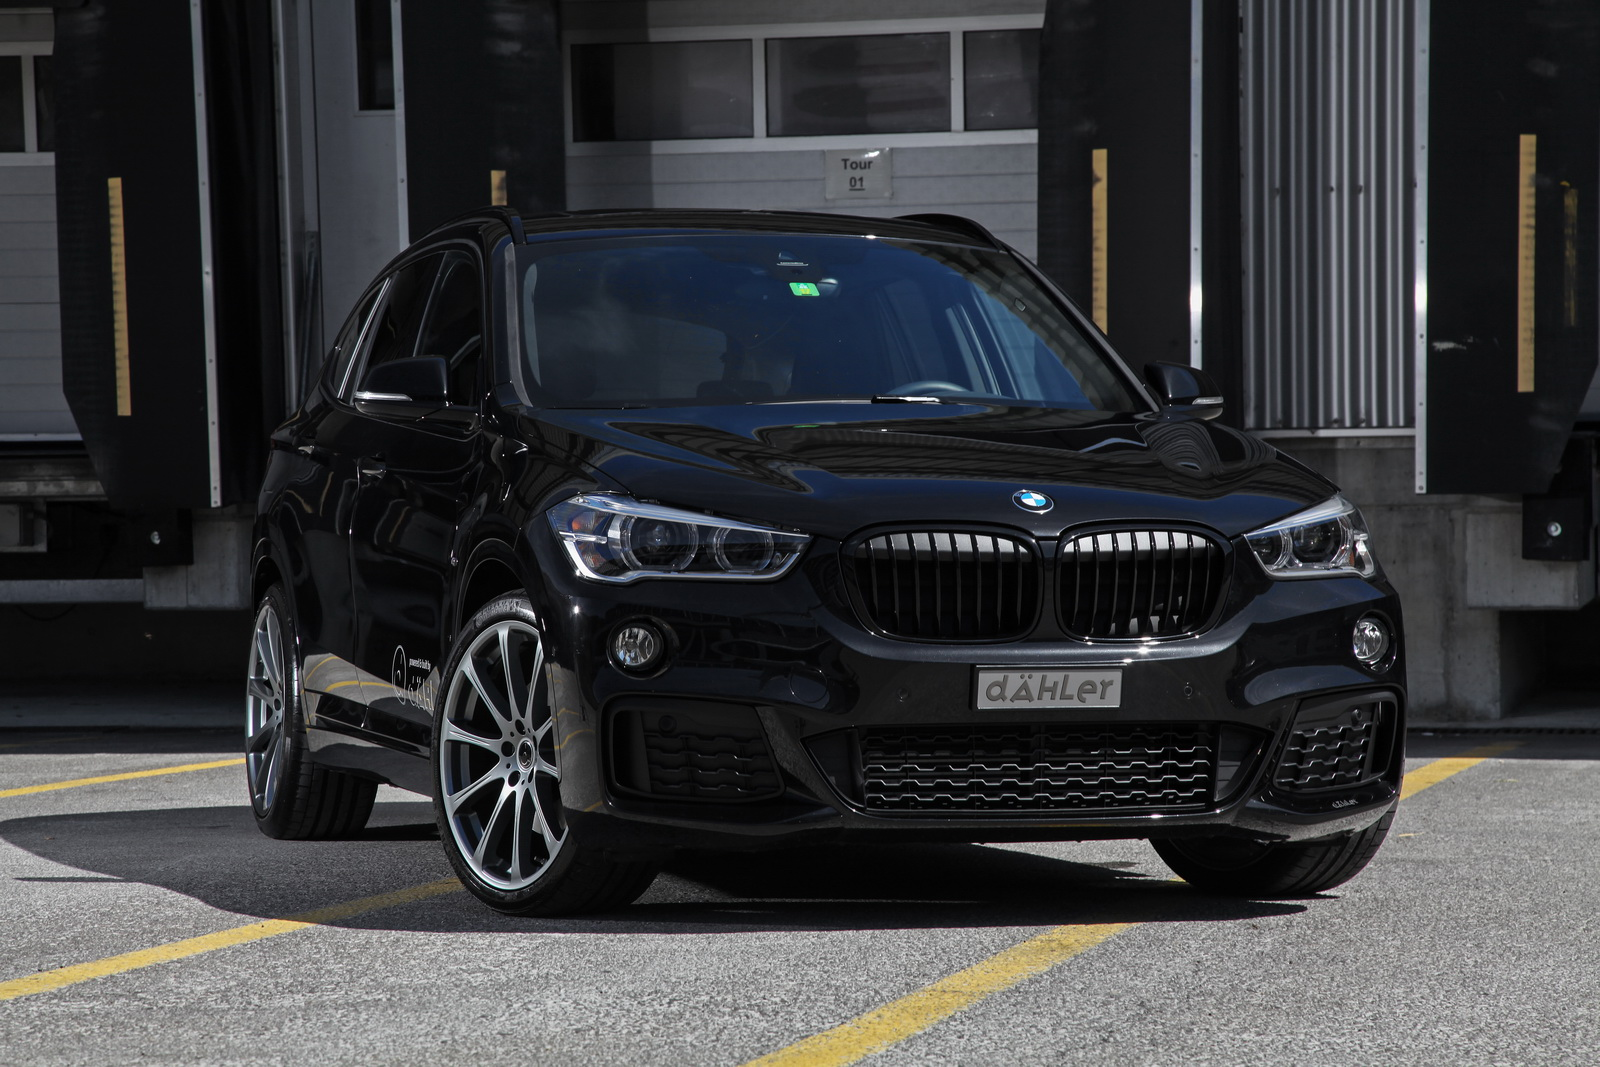 Dahler Launches Tuning Program For F48 Bmw X1